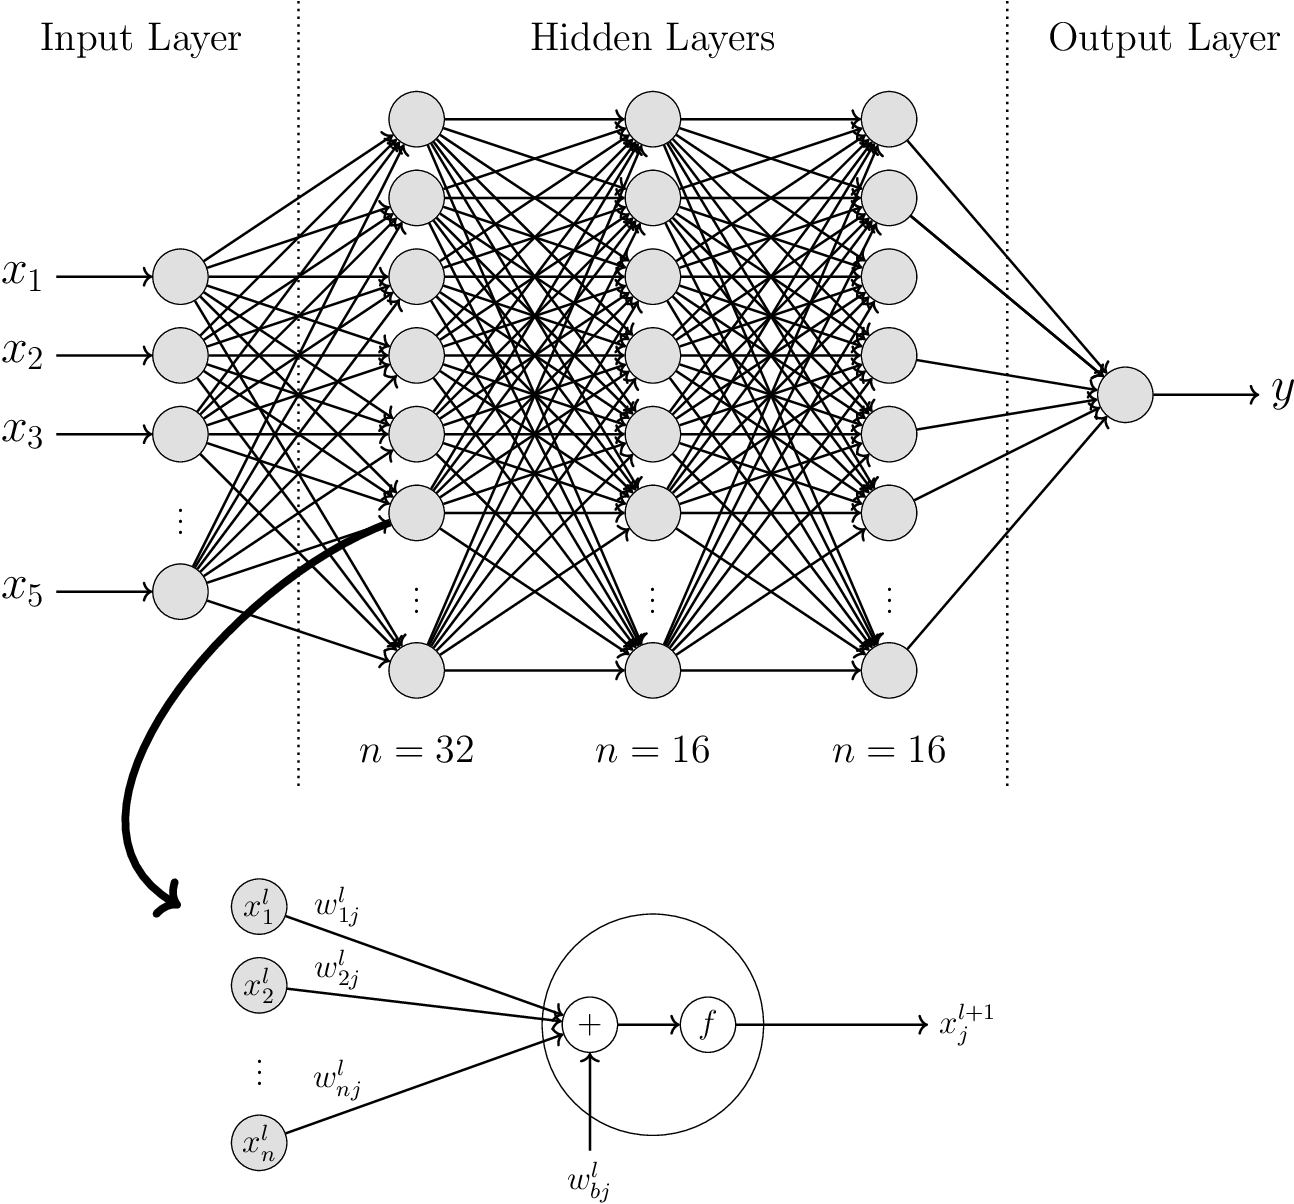 Figure 4 for Prediction of Hydraulic Blockage at Cross Drainage Structures using Regression Analysis